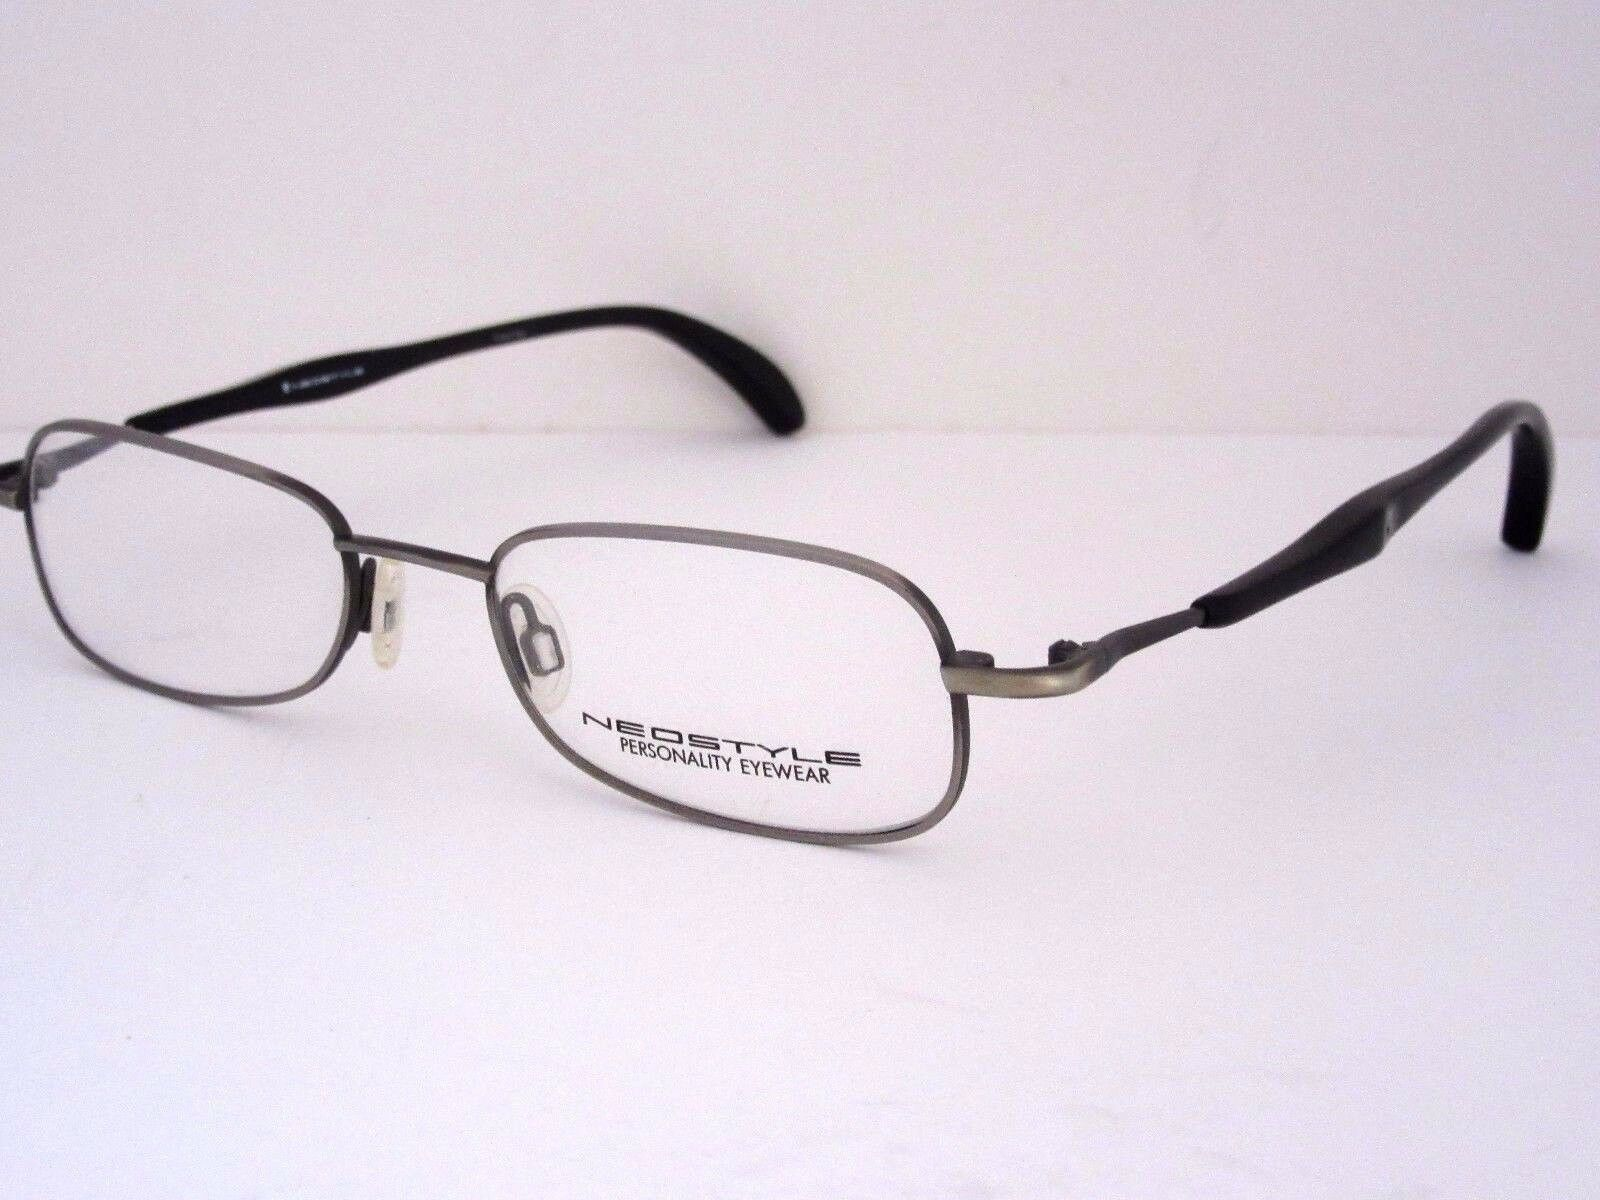 36a4df80689 NEOSTYLE College 288 854 Pewter   Black Eyeglasses Frame Italy NOS ...